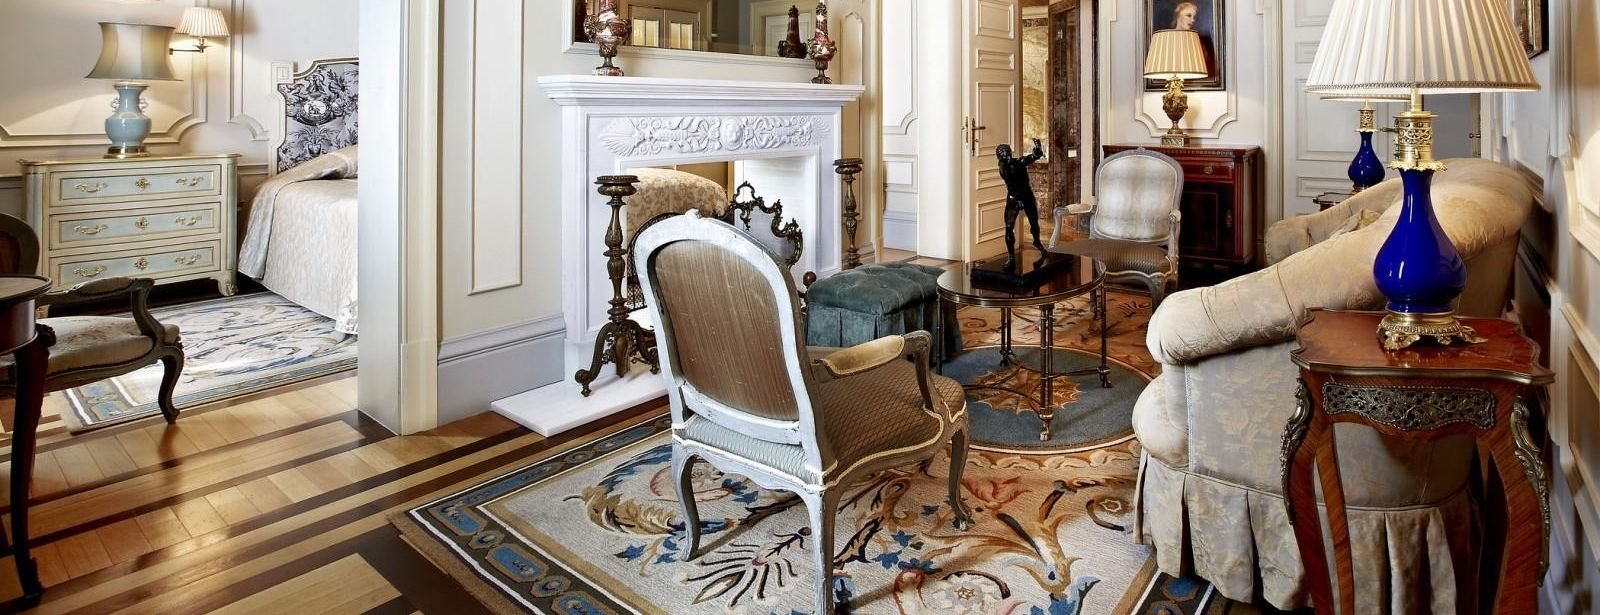 Presidential Suite at Hotel Grande Bretagne, a Luxury Collection Hotel Athens Greece